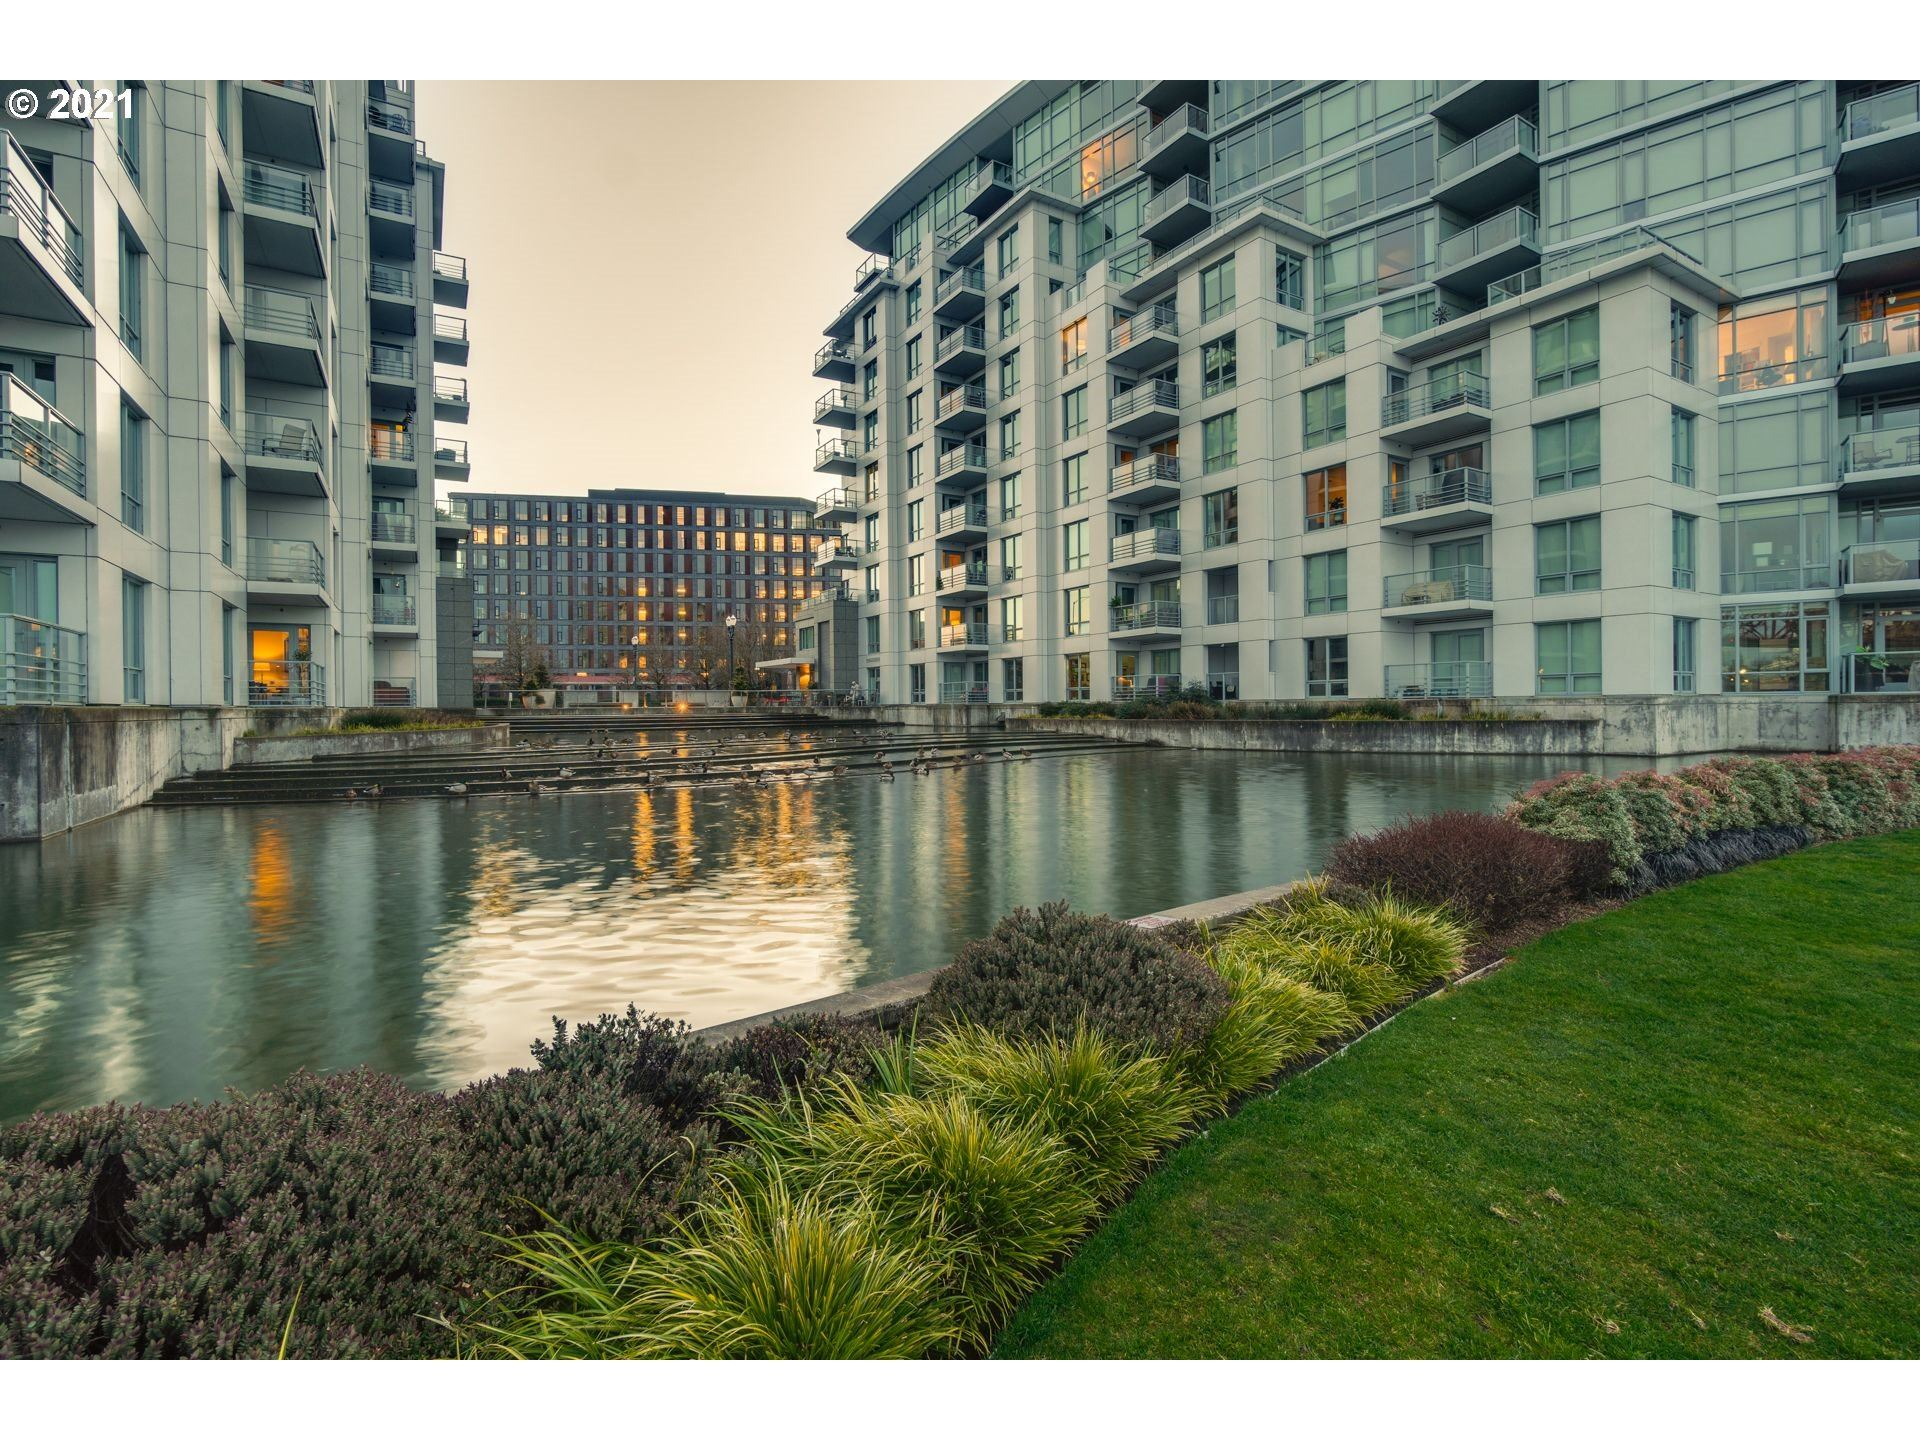 1310 NW NAITO PKWY #508, Portland, OR 97209 - MLS#: 21231604